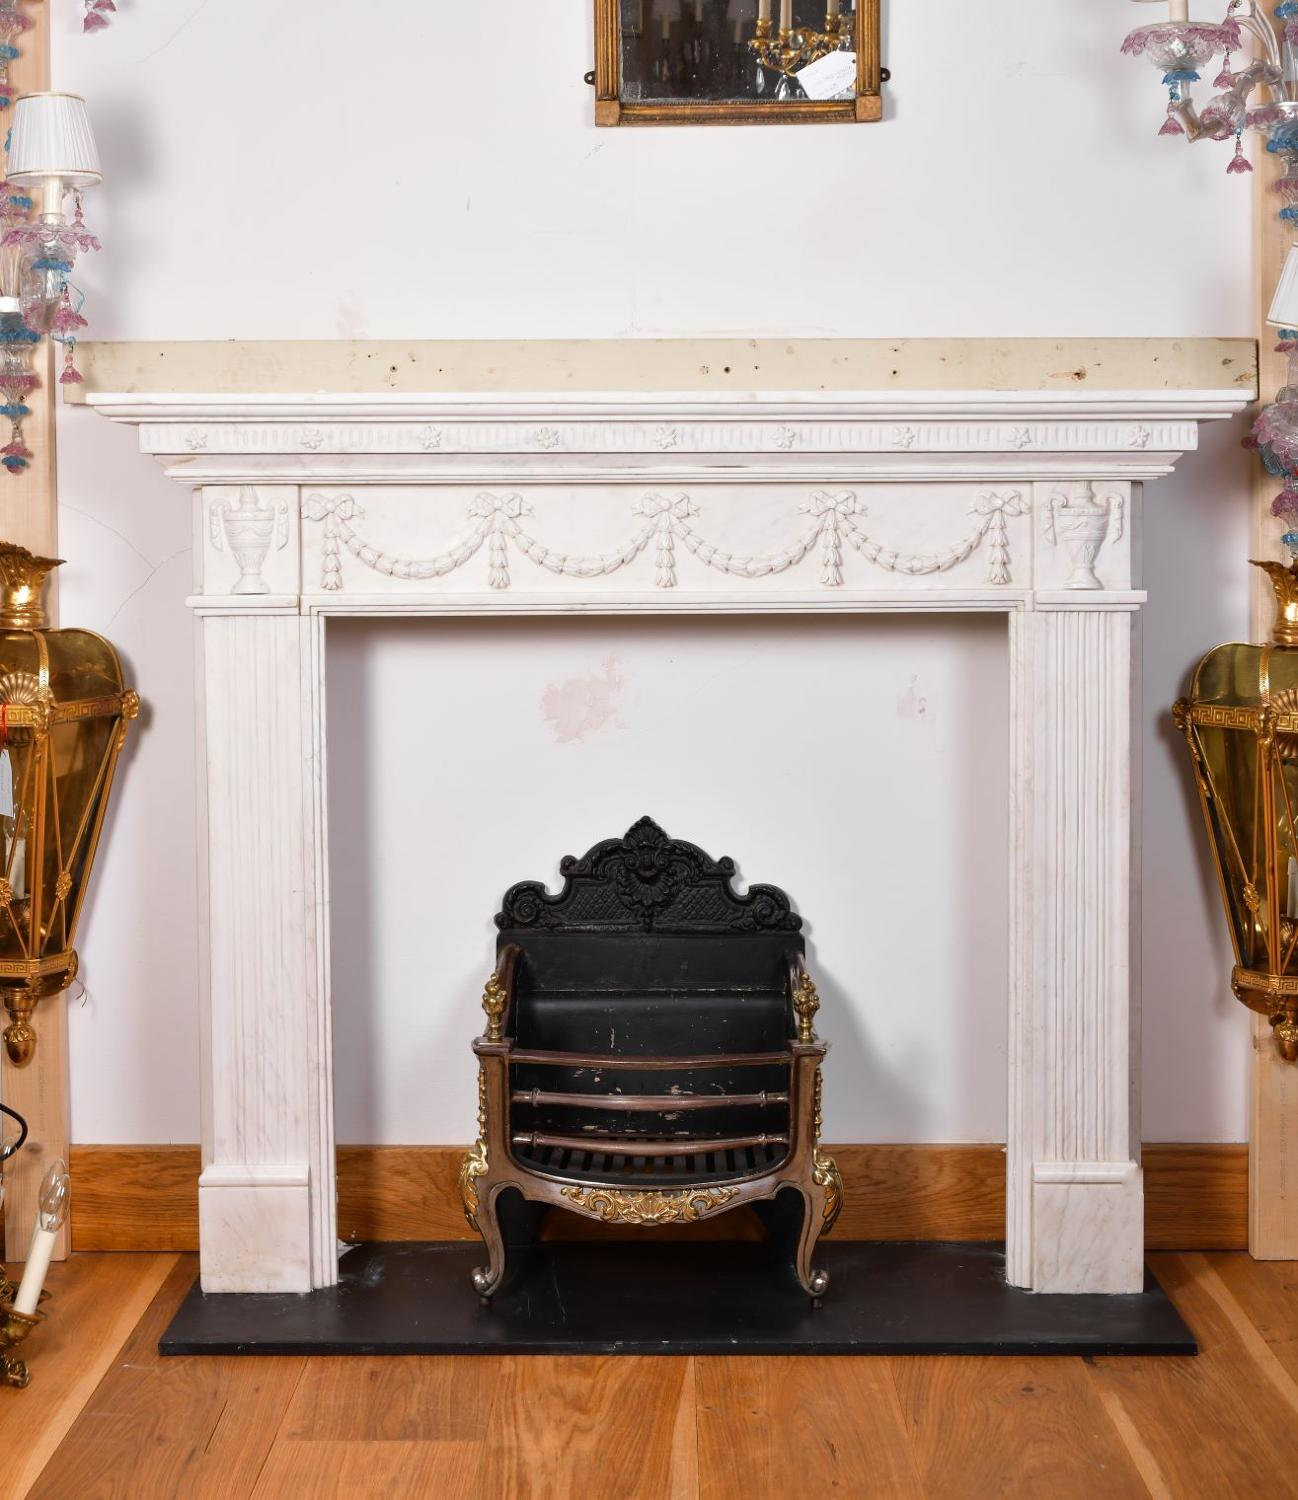 An Adam stylewhite marble fireplace